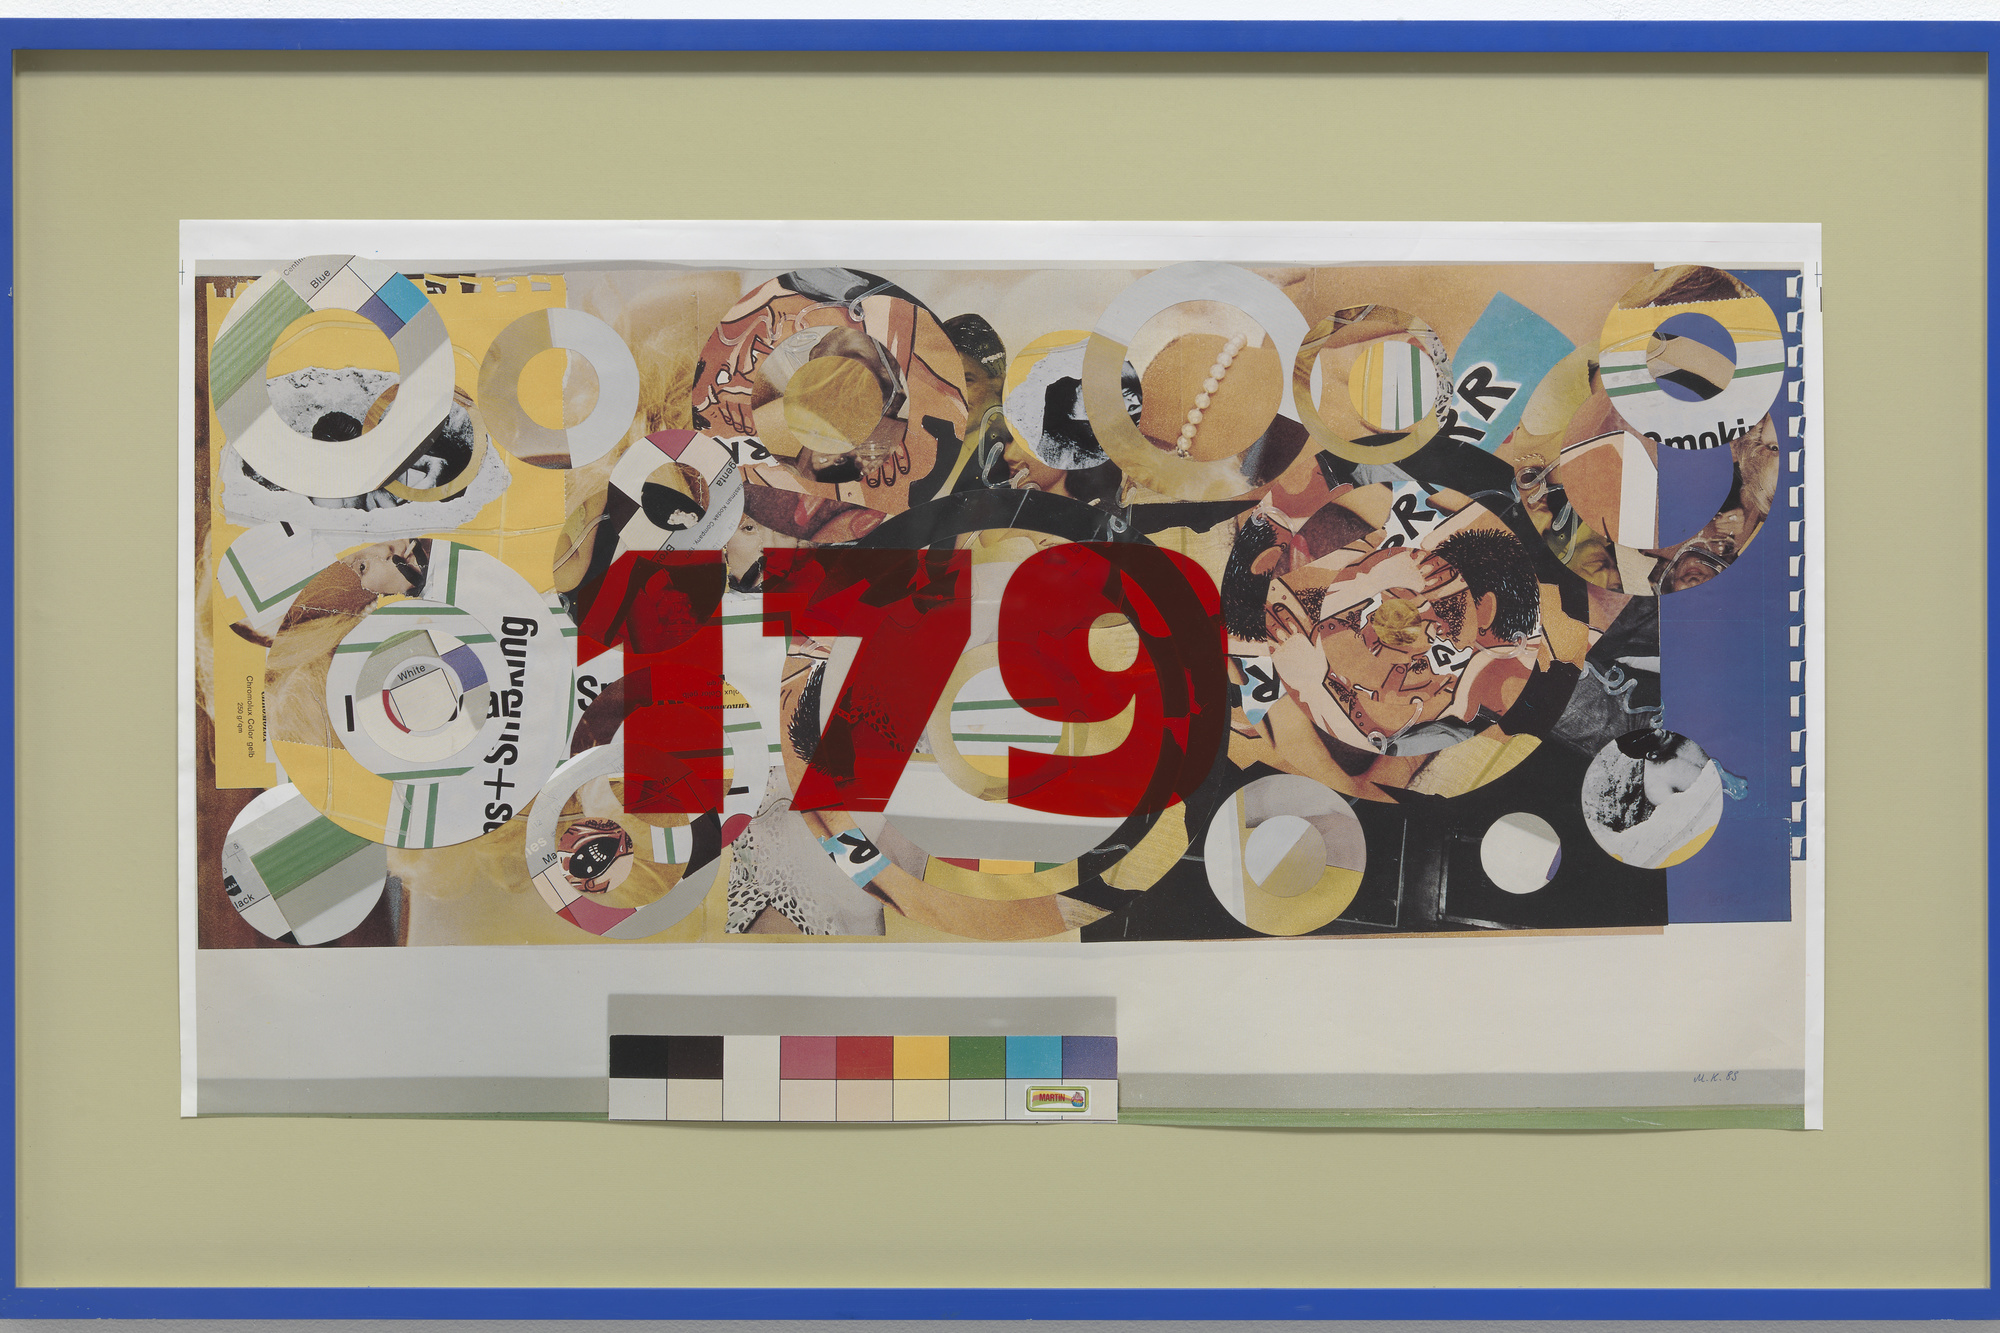 Martin Kippenberger. Untitled. 1989. Cut-and-pasted-printed paper and cut-and-pasted synthetic sheeting on photo offset lithograph in artist's frame, 21 7/8 × 39 1/2ʺ (55.5 × 99.8 cm). Gift of Walter Bareiss. © 2016 Estate Martin Kippenberger, Galerie Gisela Capitain, Cologne